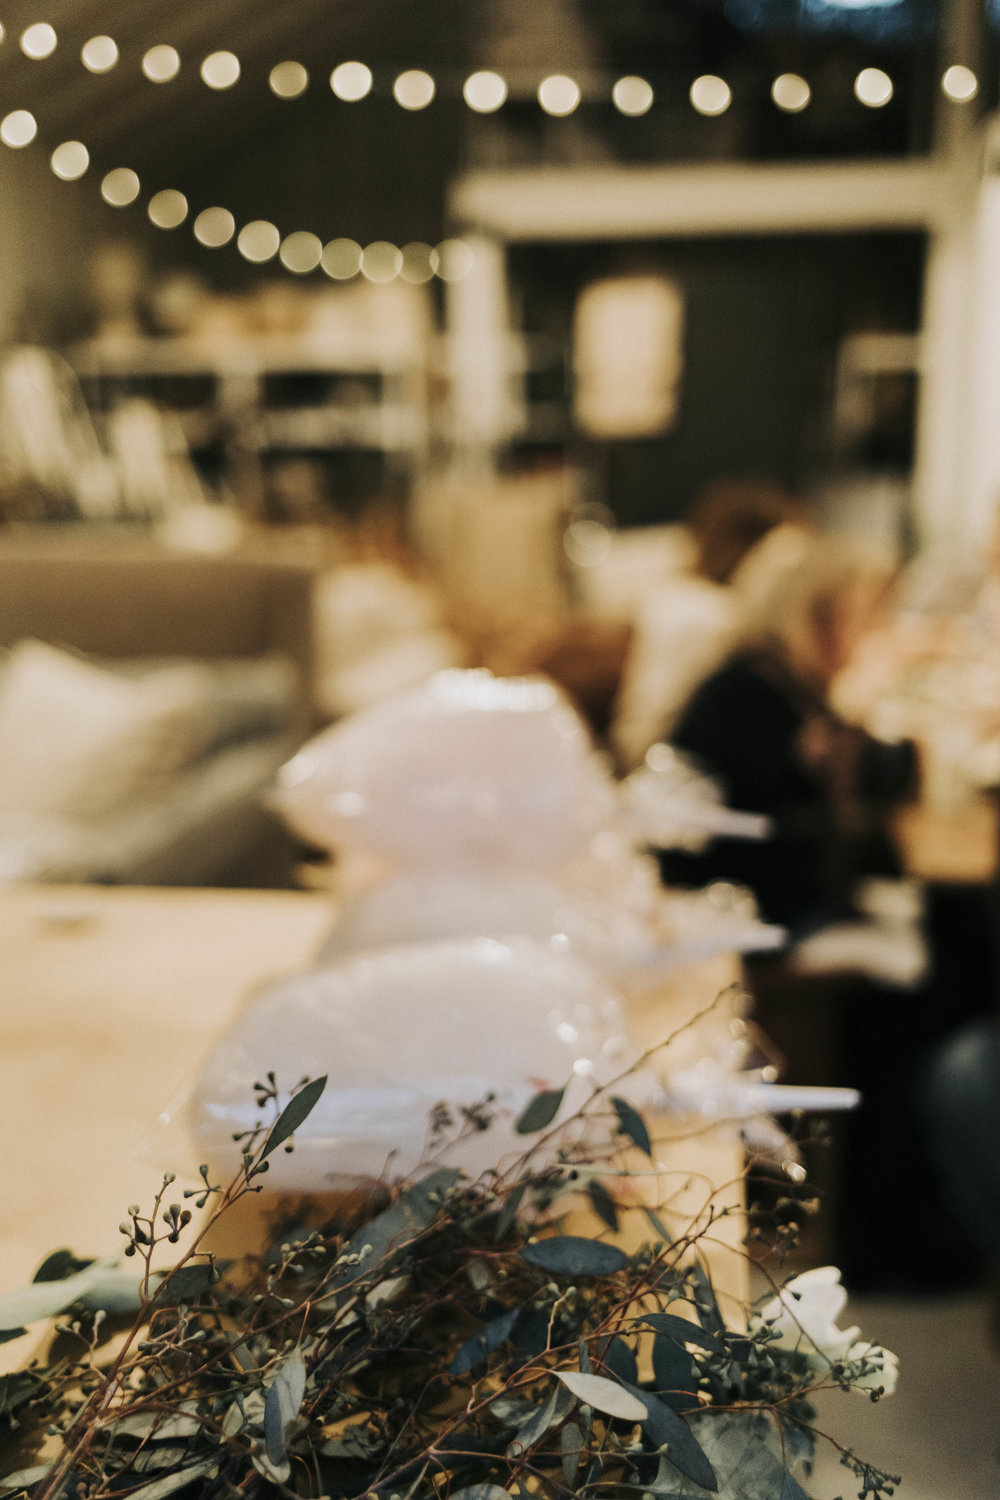 A Company Party with Pizza and Hand Spun Sugar Floss - Tremaine Ranch - AZ Arizona Wedding & Event, Vintage, Furniture, Tableware, & Specialty Rentals in Phoenix, Tucson, Flagstaff, Sedona, Tempe, Chandler, Mesa, Gilbert, Prescott, Payson 5104.jpg